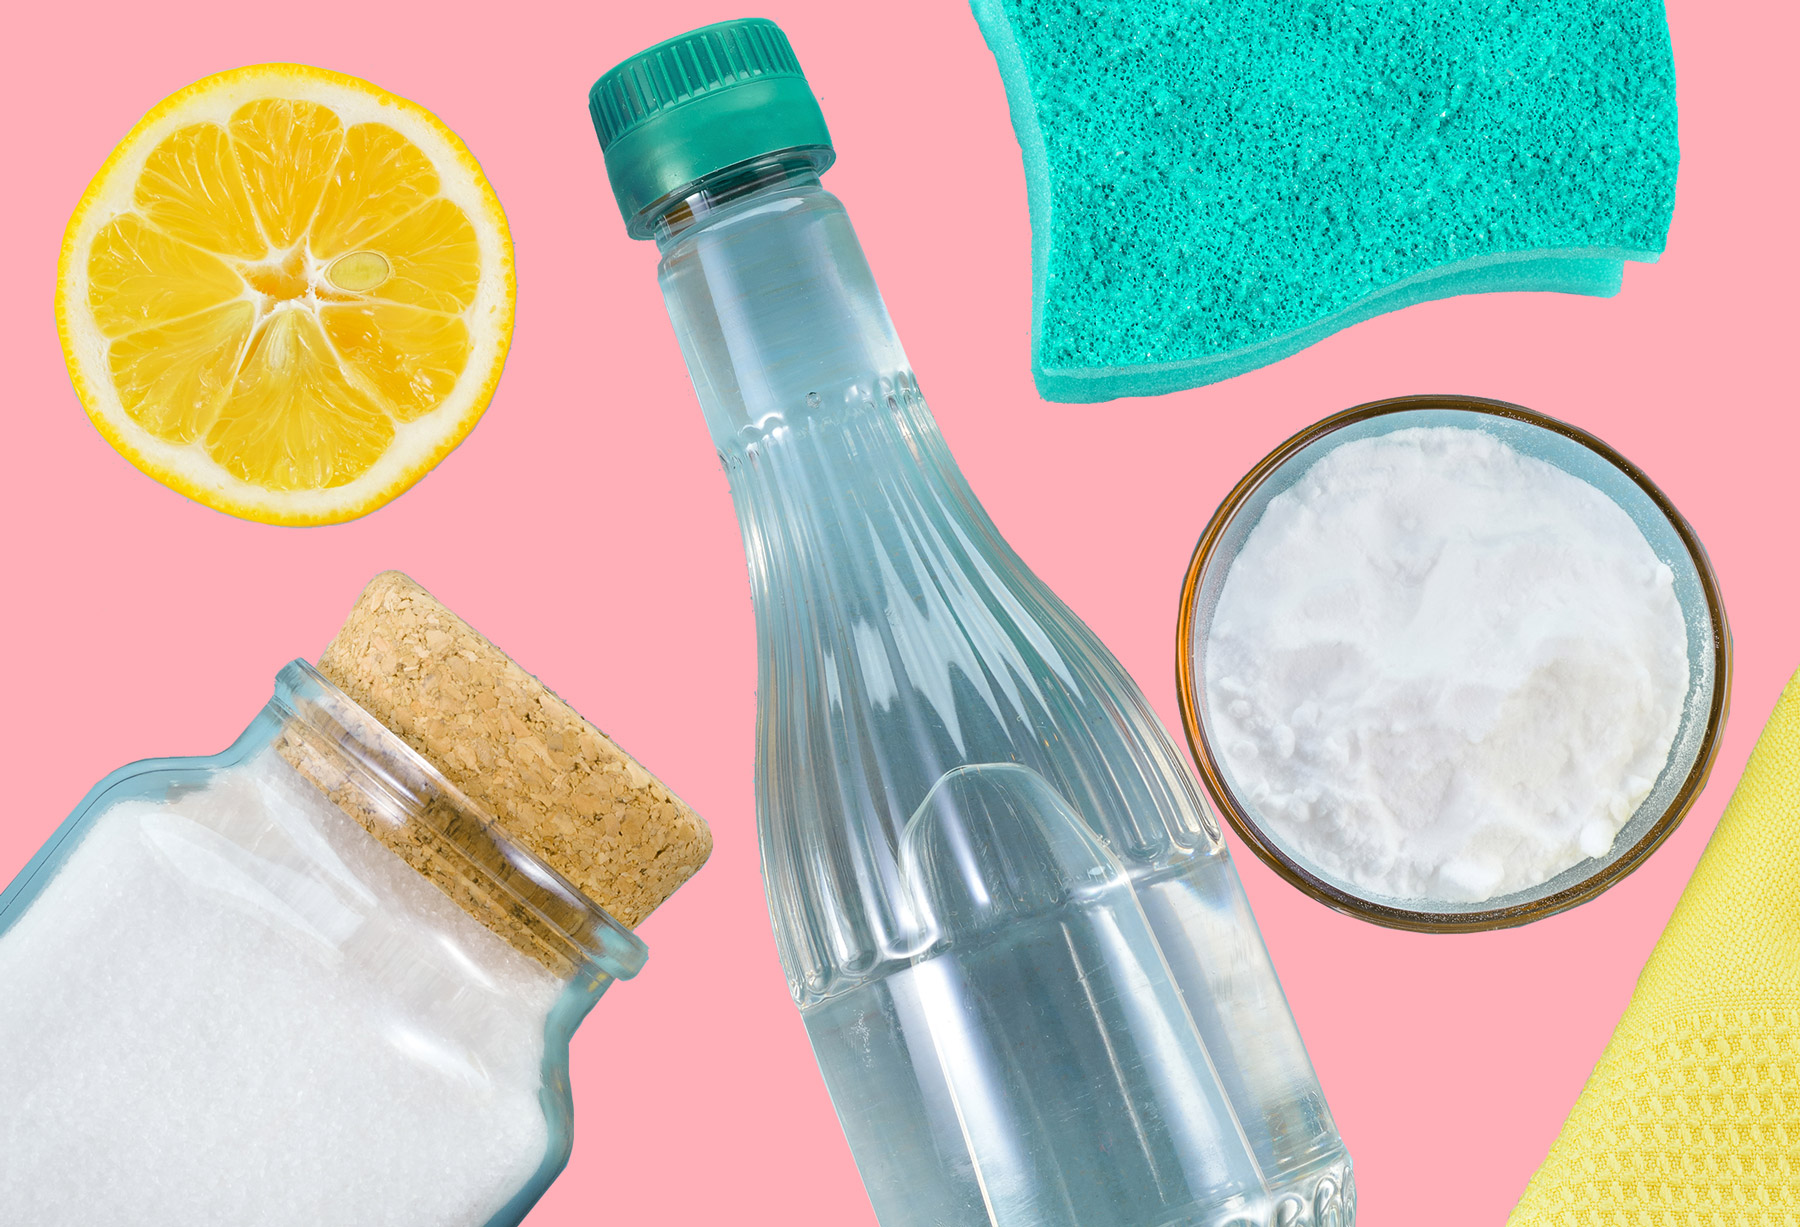 Natural cleaning products - must-knows for cleaning safely